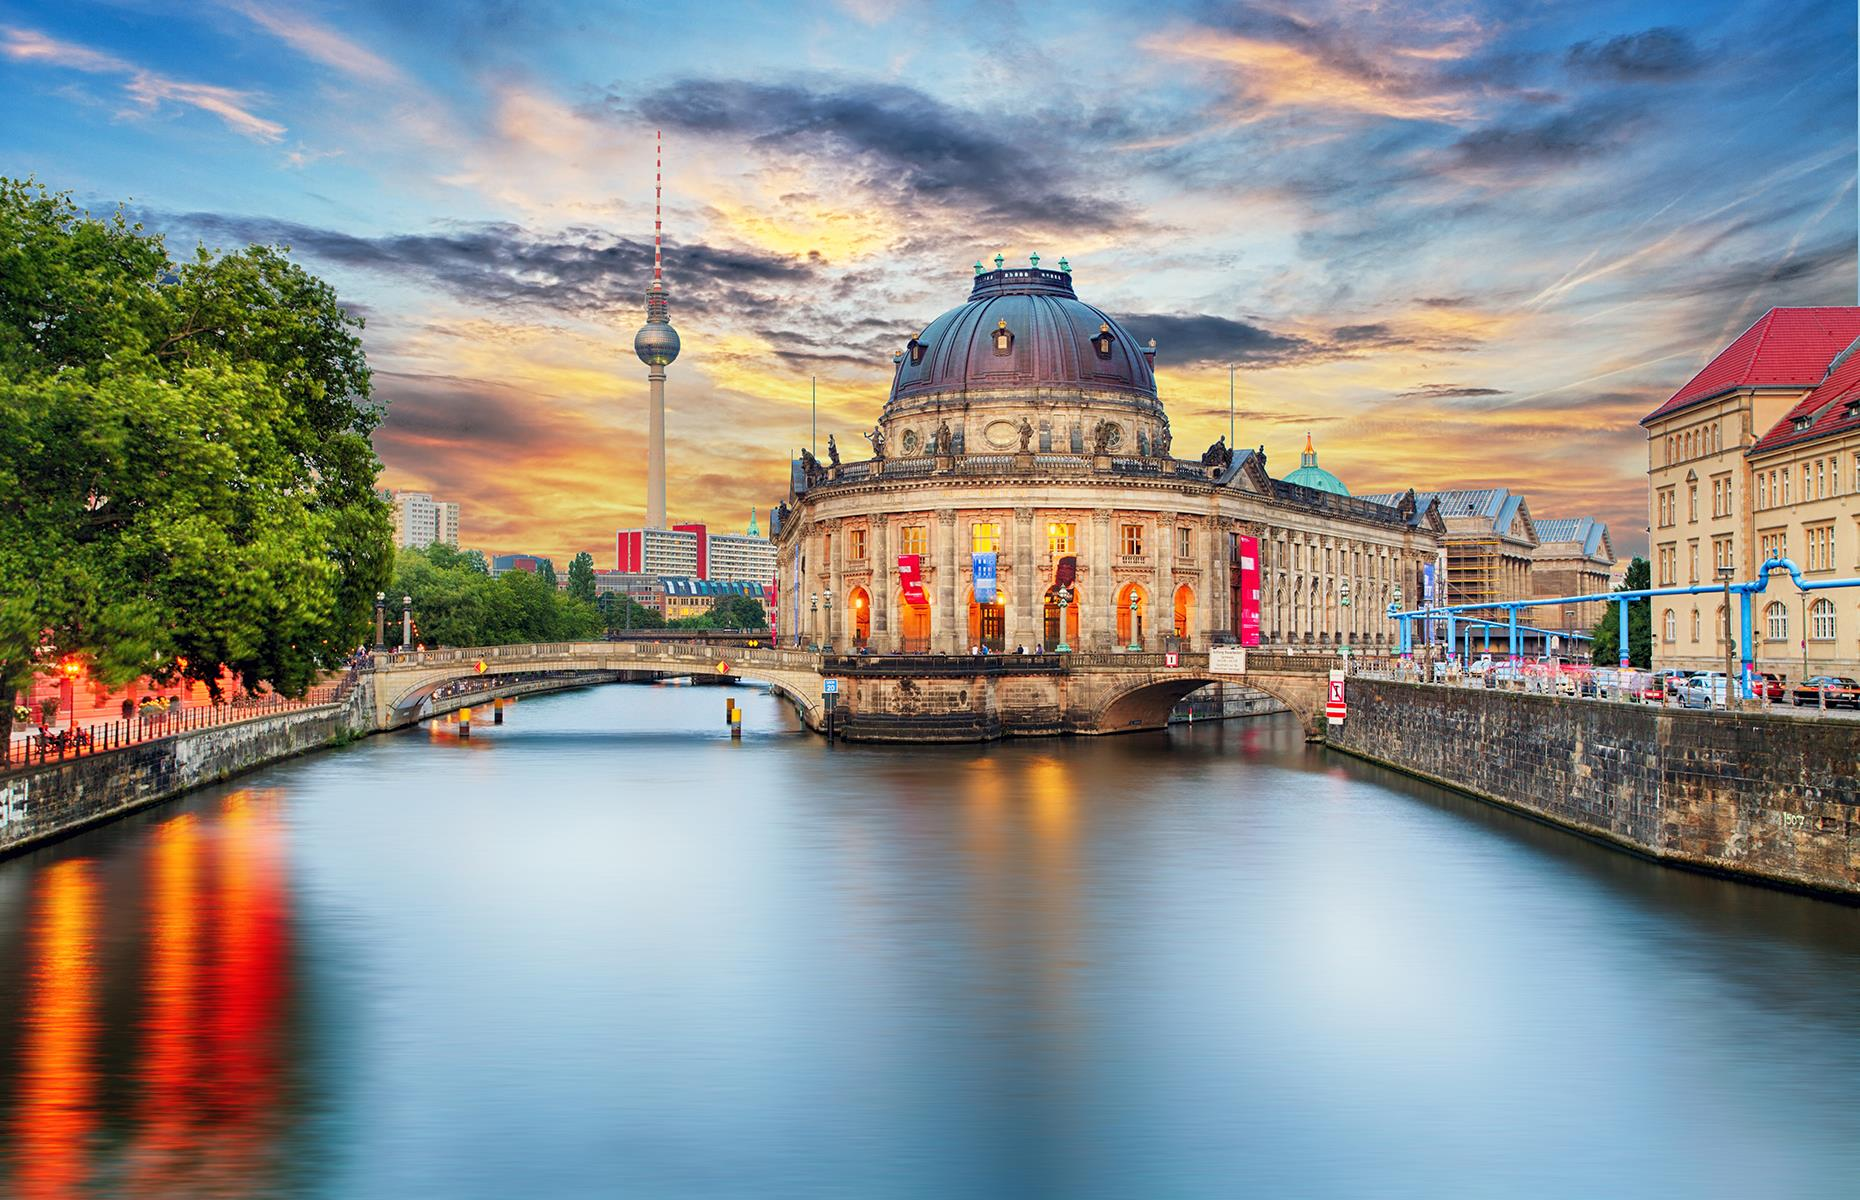 Slide 6 of 31: The German capital's cultural side is best on display on the charming Museum Island (pictured). Referring to the north side of the island, it's a complex of five significant museums (a sixth, the Humboldt Forum, is due to open near the site later this year), including The Altes (Old) and The Neues (New) Museums, Old National Gallery, the Bode Museum and The Pergamon Museum, which contains several restored and significant buildings, like the Ishtar Gate of Babylon.